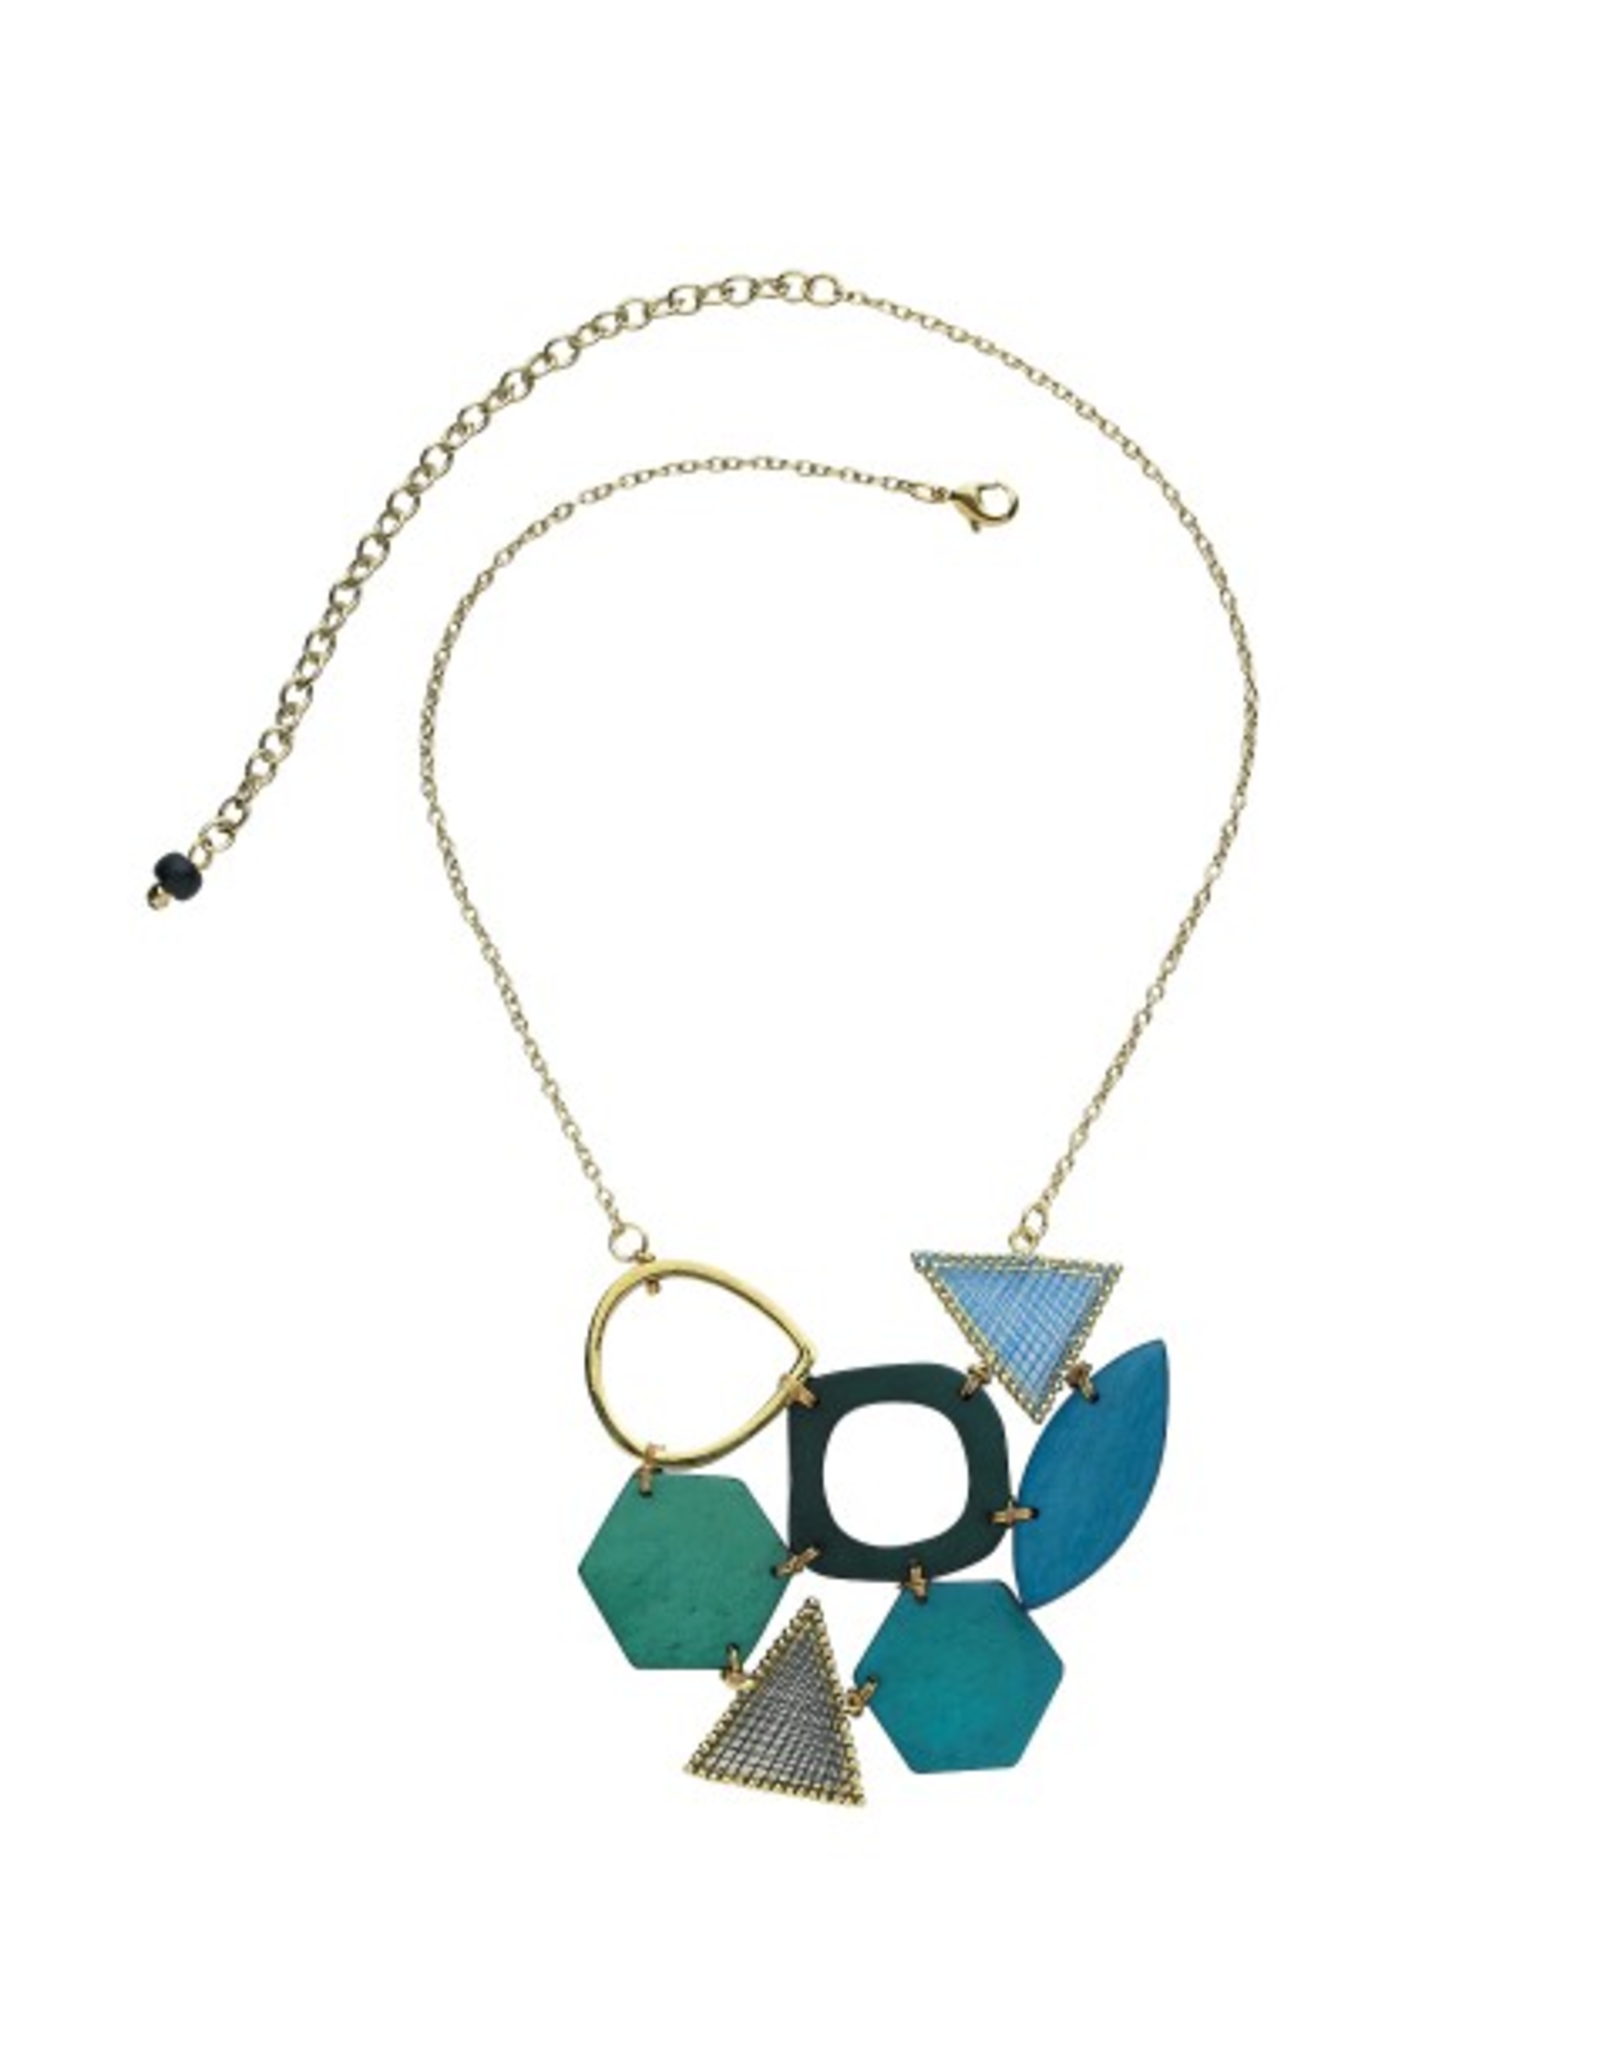 Fragments Necklace, India